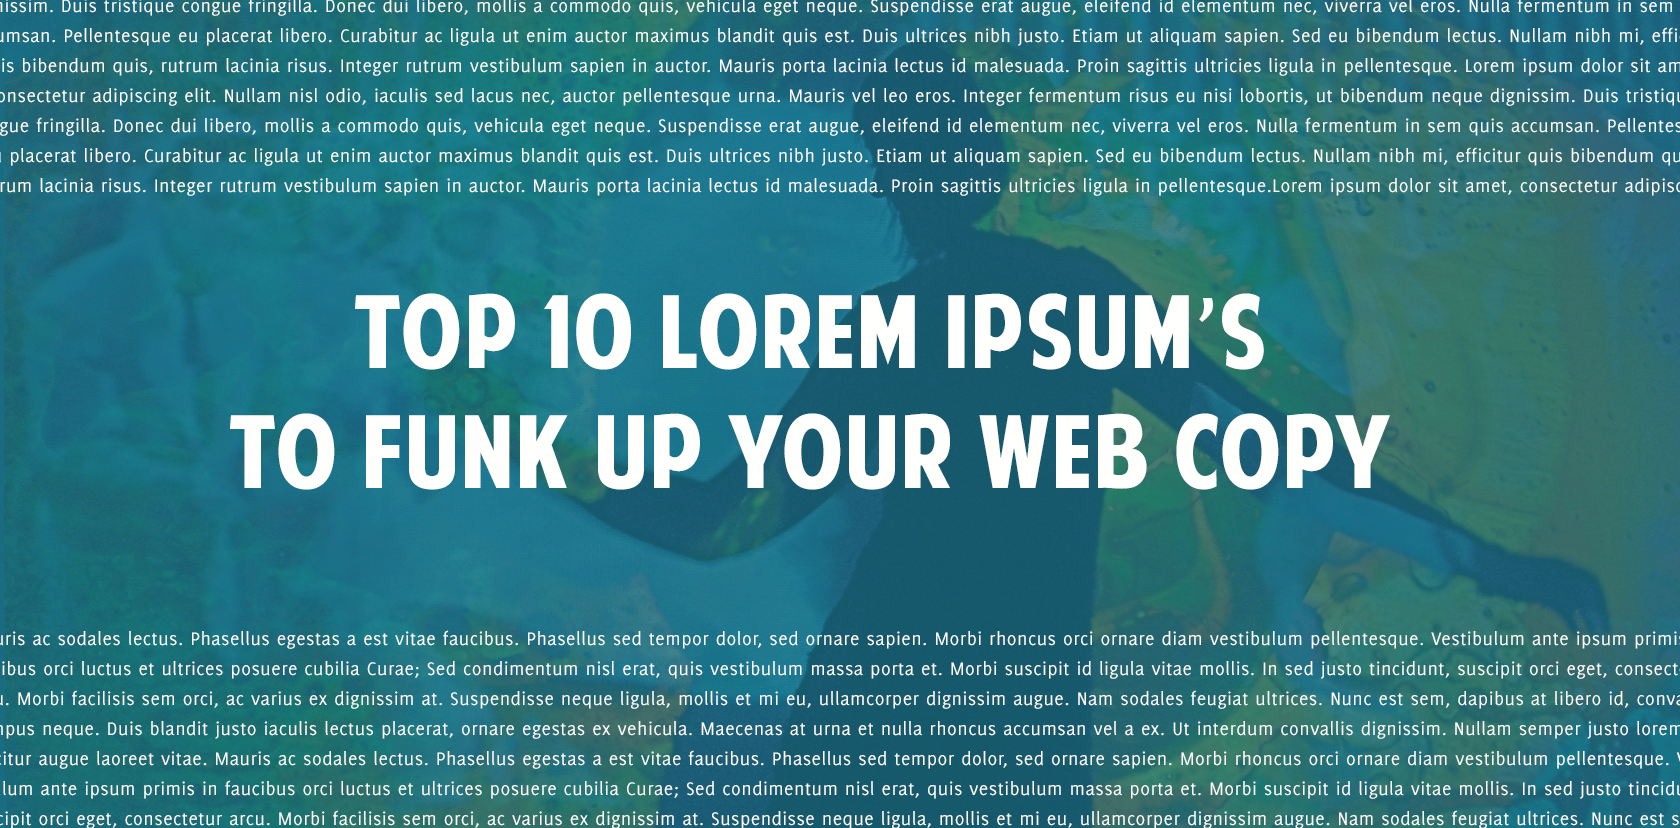 Top Lorem Ipsum's to Funk Up you Web Copy